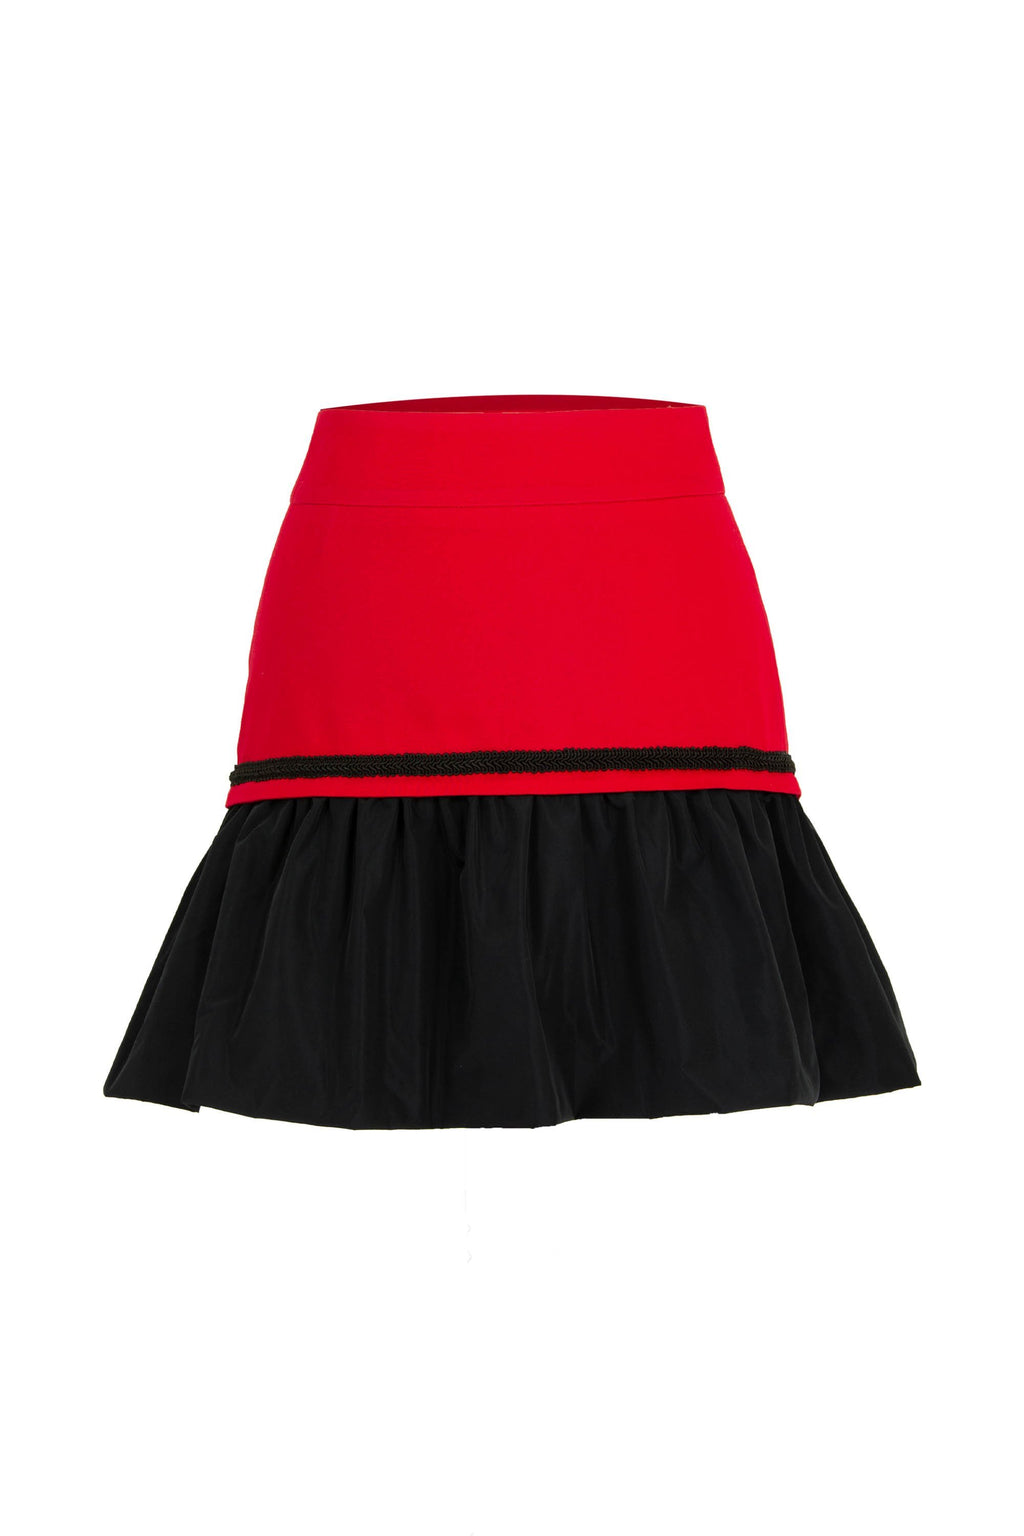 Modern Power Skirt - Red - Tia Dorraine London